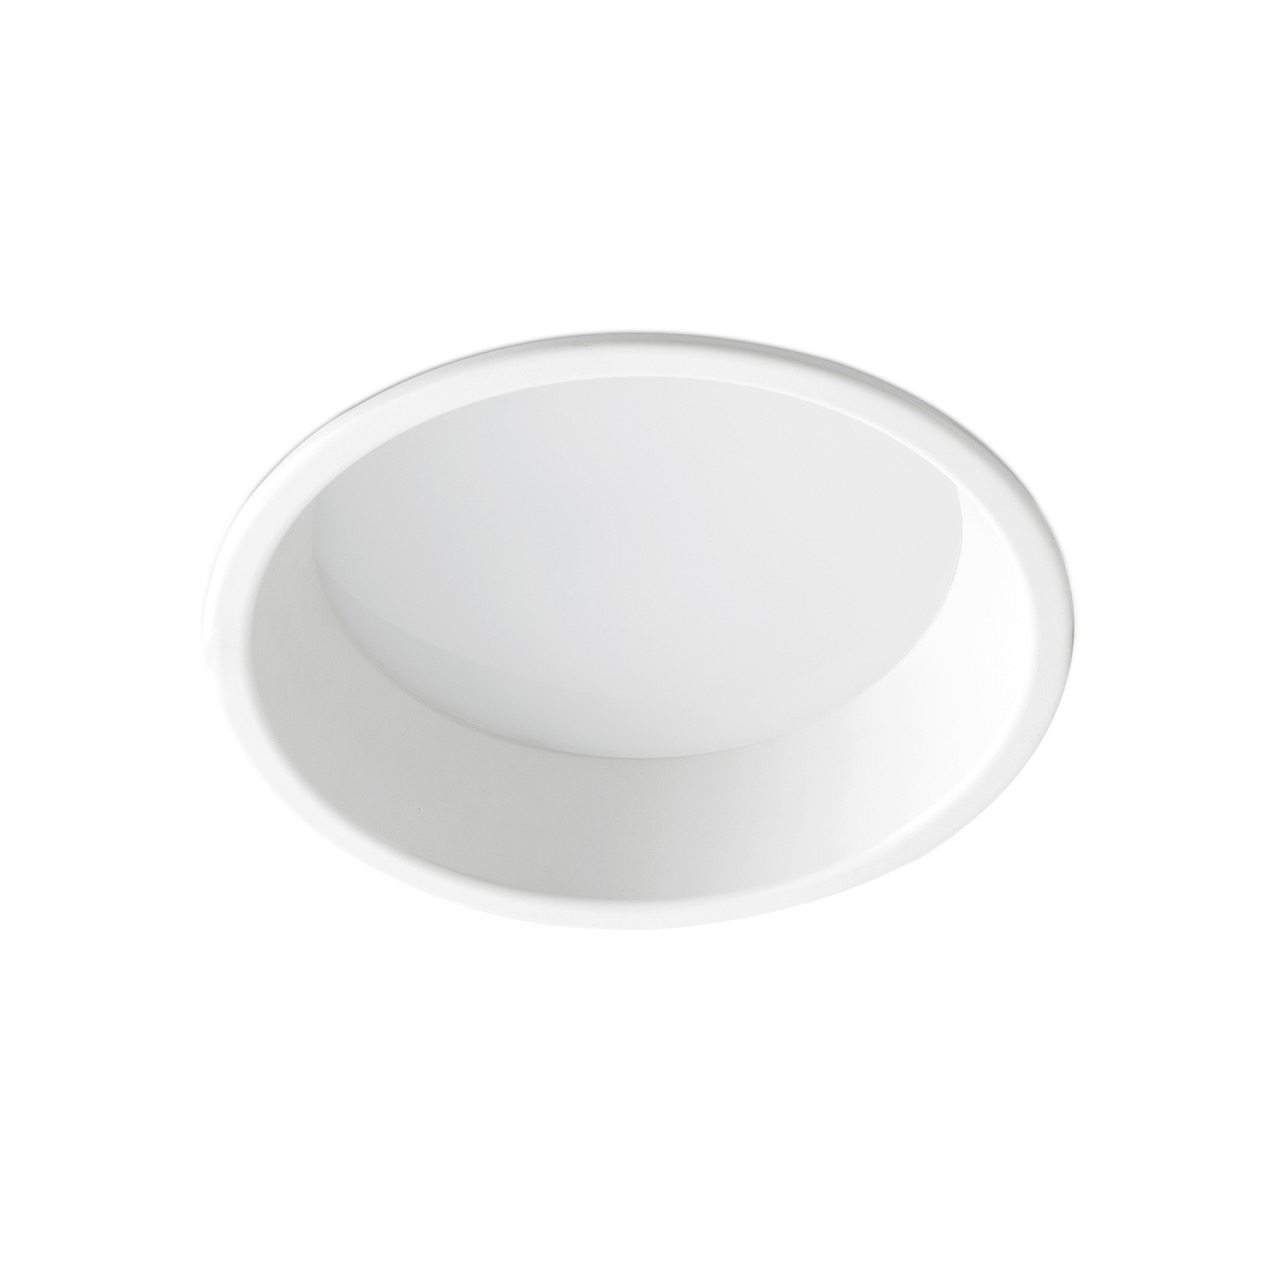 Comprar focos downlight empotrables de led modelo son de - Focos techo led ...